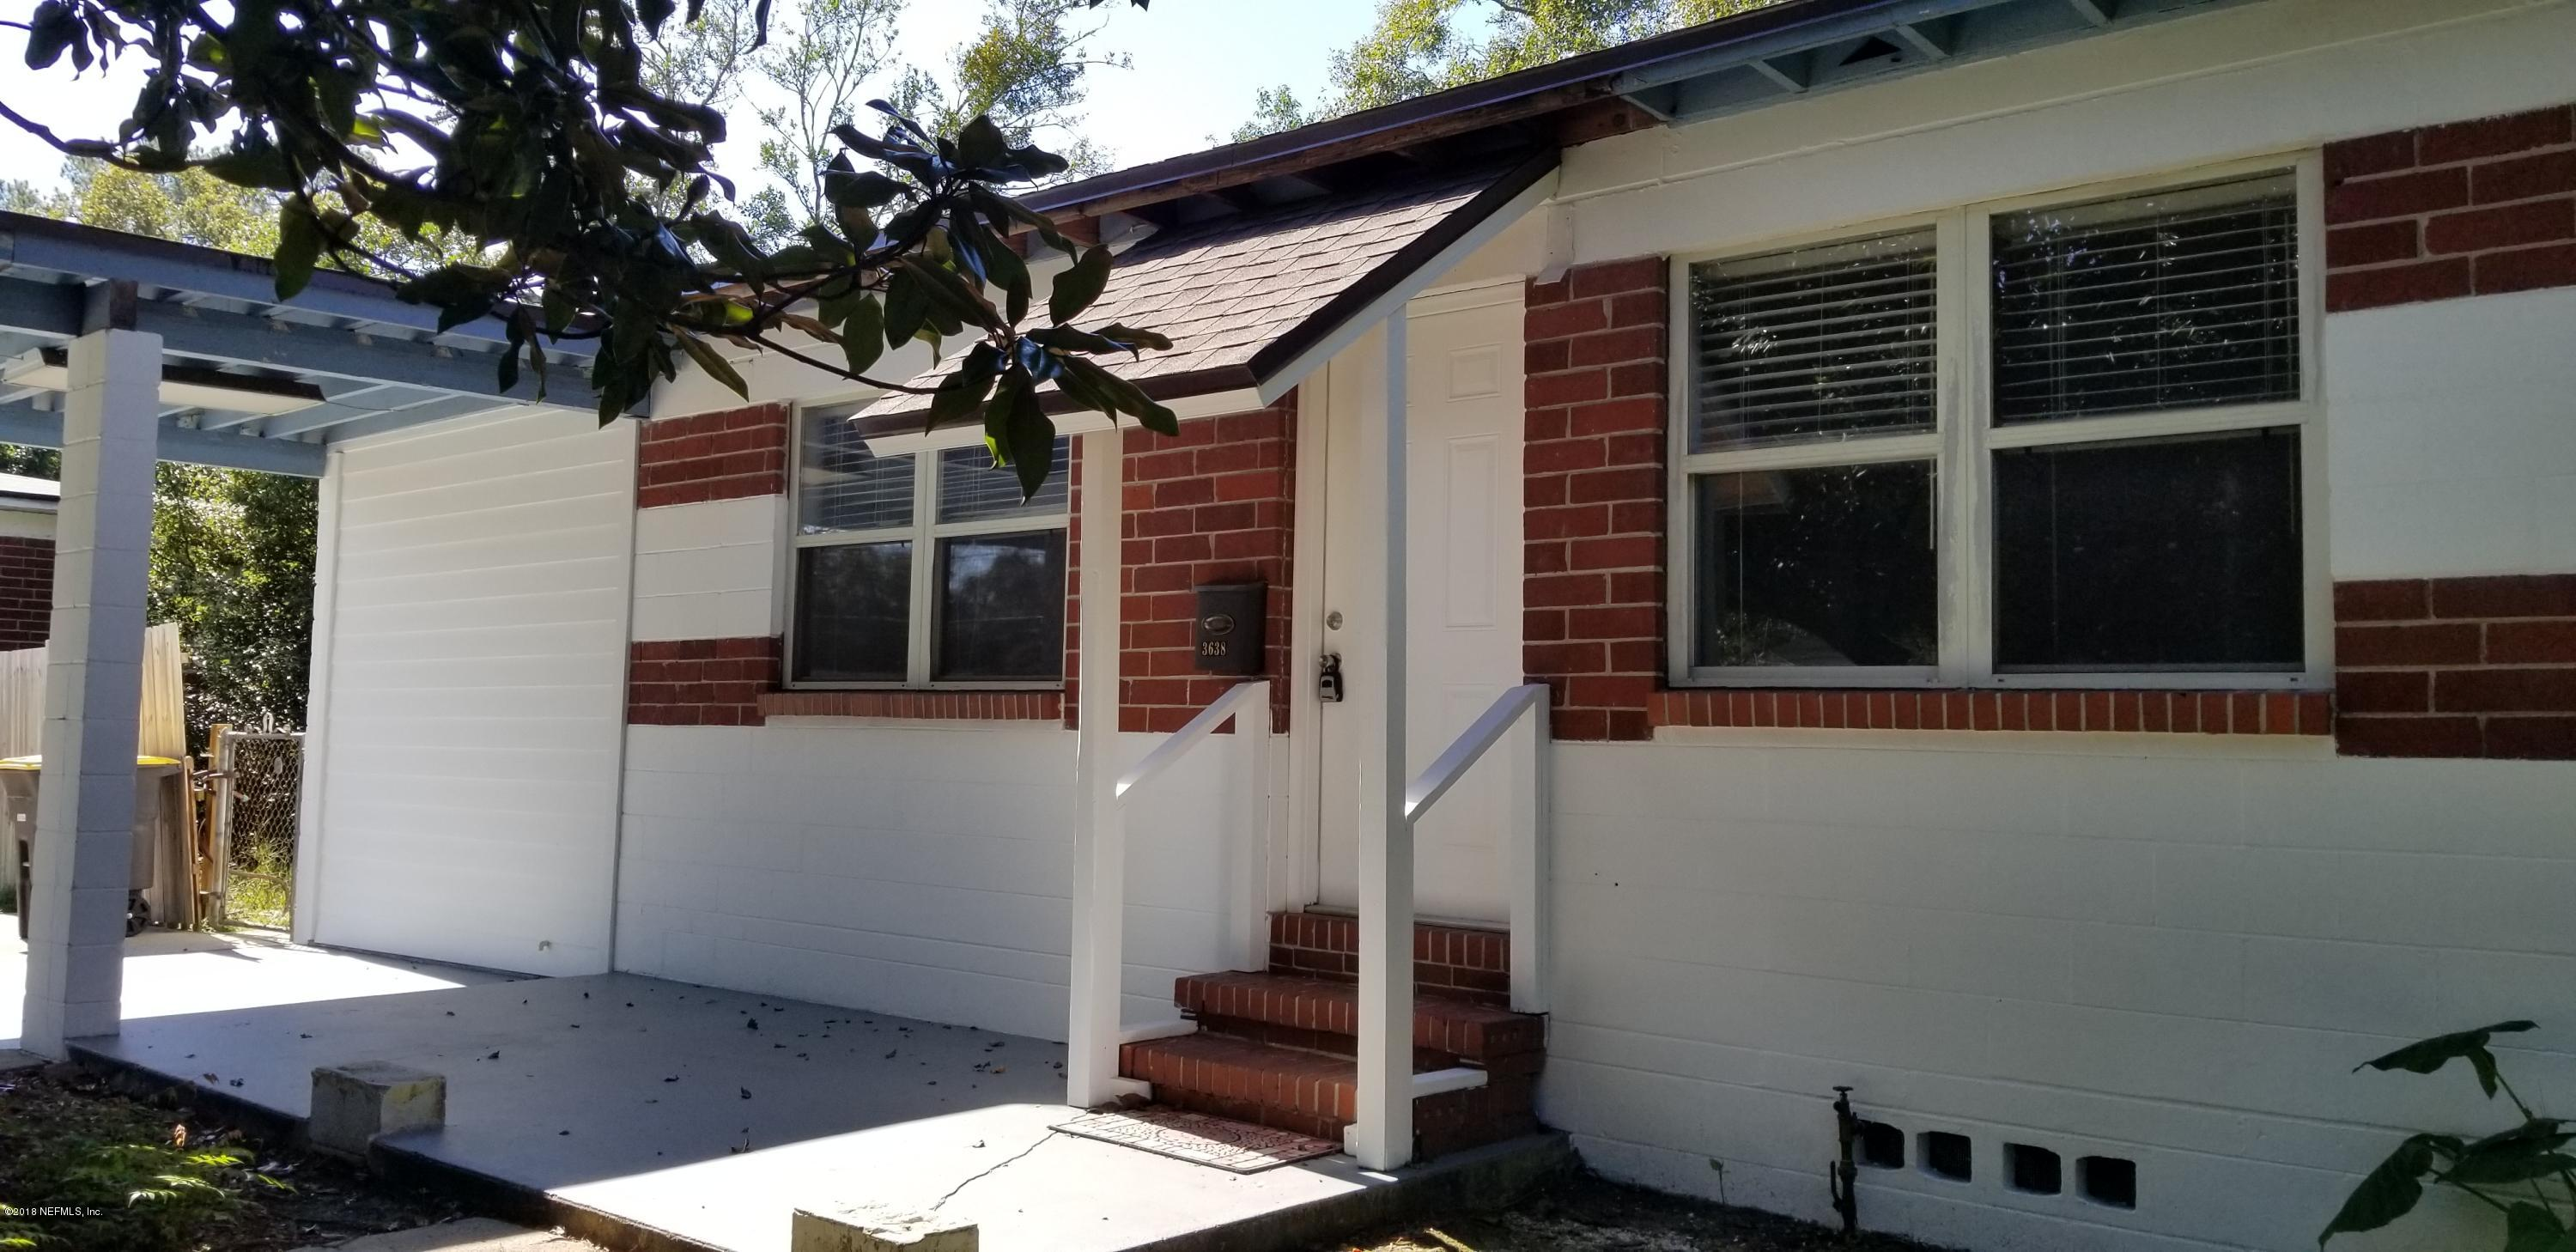 3638 JAMMES, JACKSONVILLE, FLORIDA 32210, 3 Bedrooms Bedrooms, ,1 BathroomBathrooms,Residential - single family,For sale,JAMMES,967444